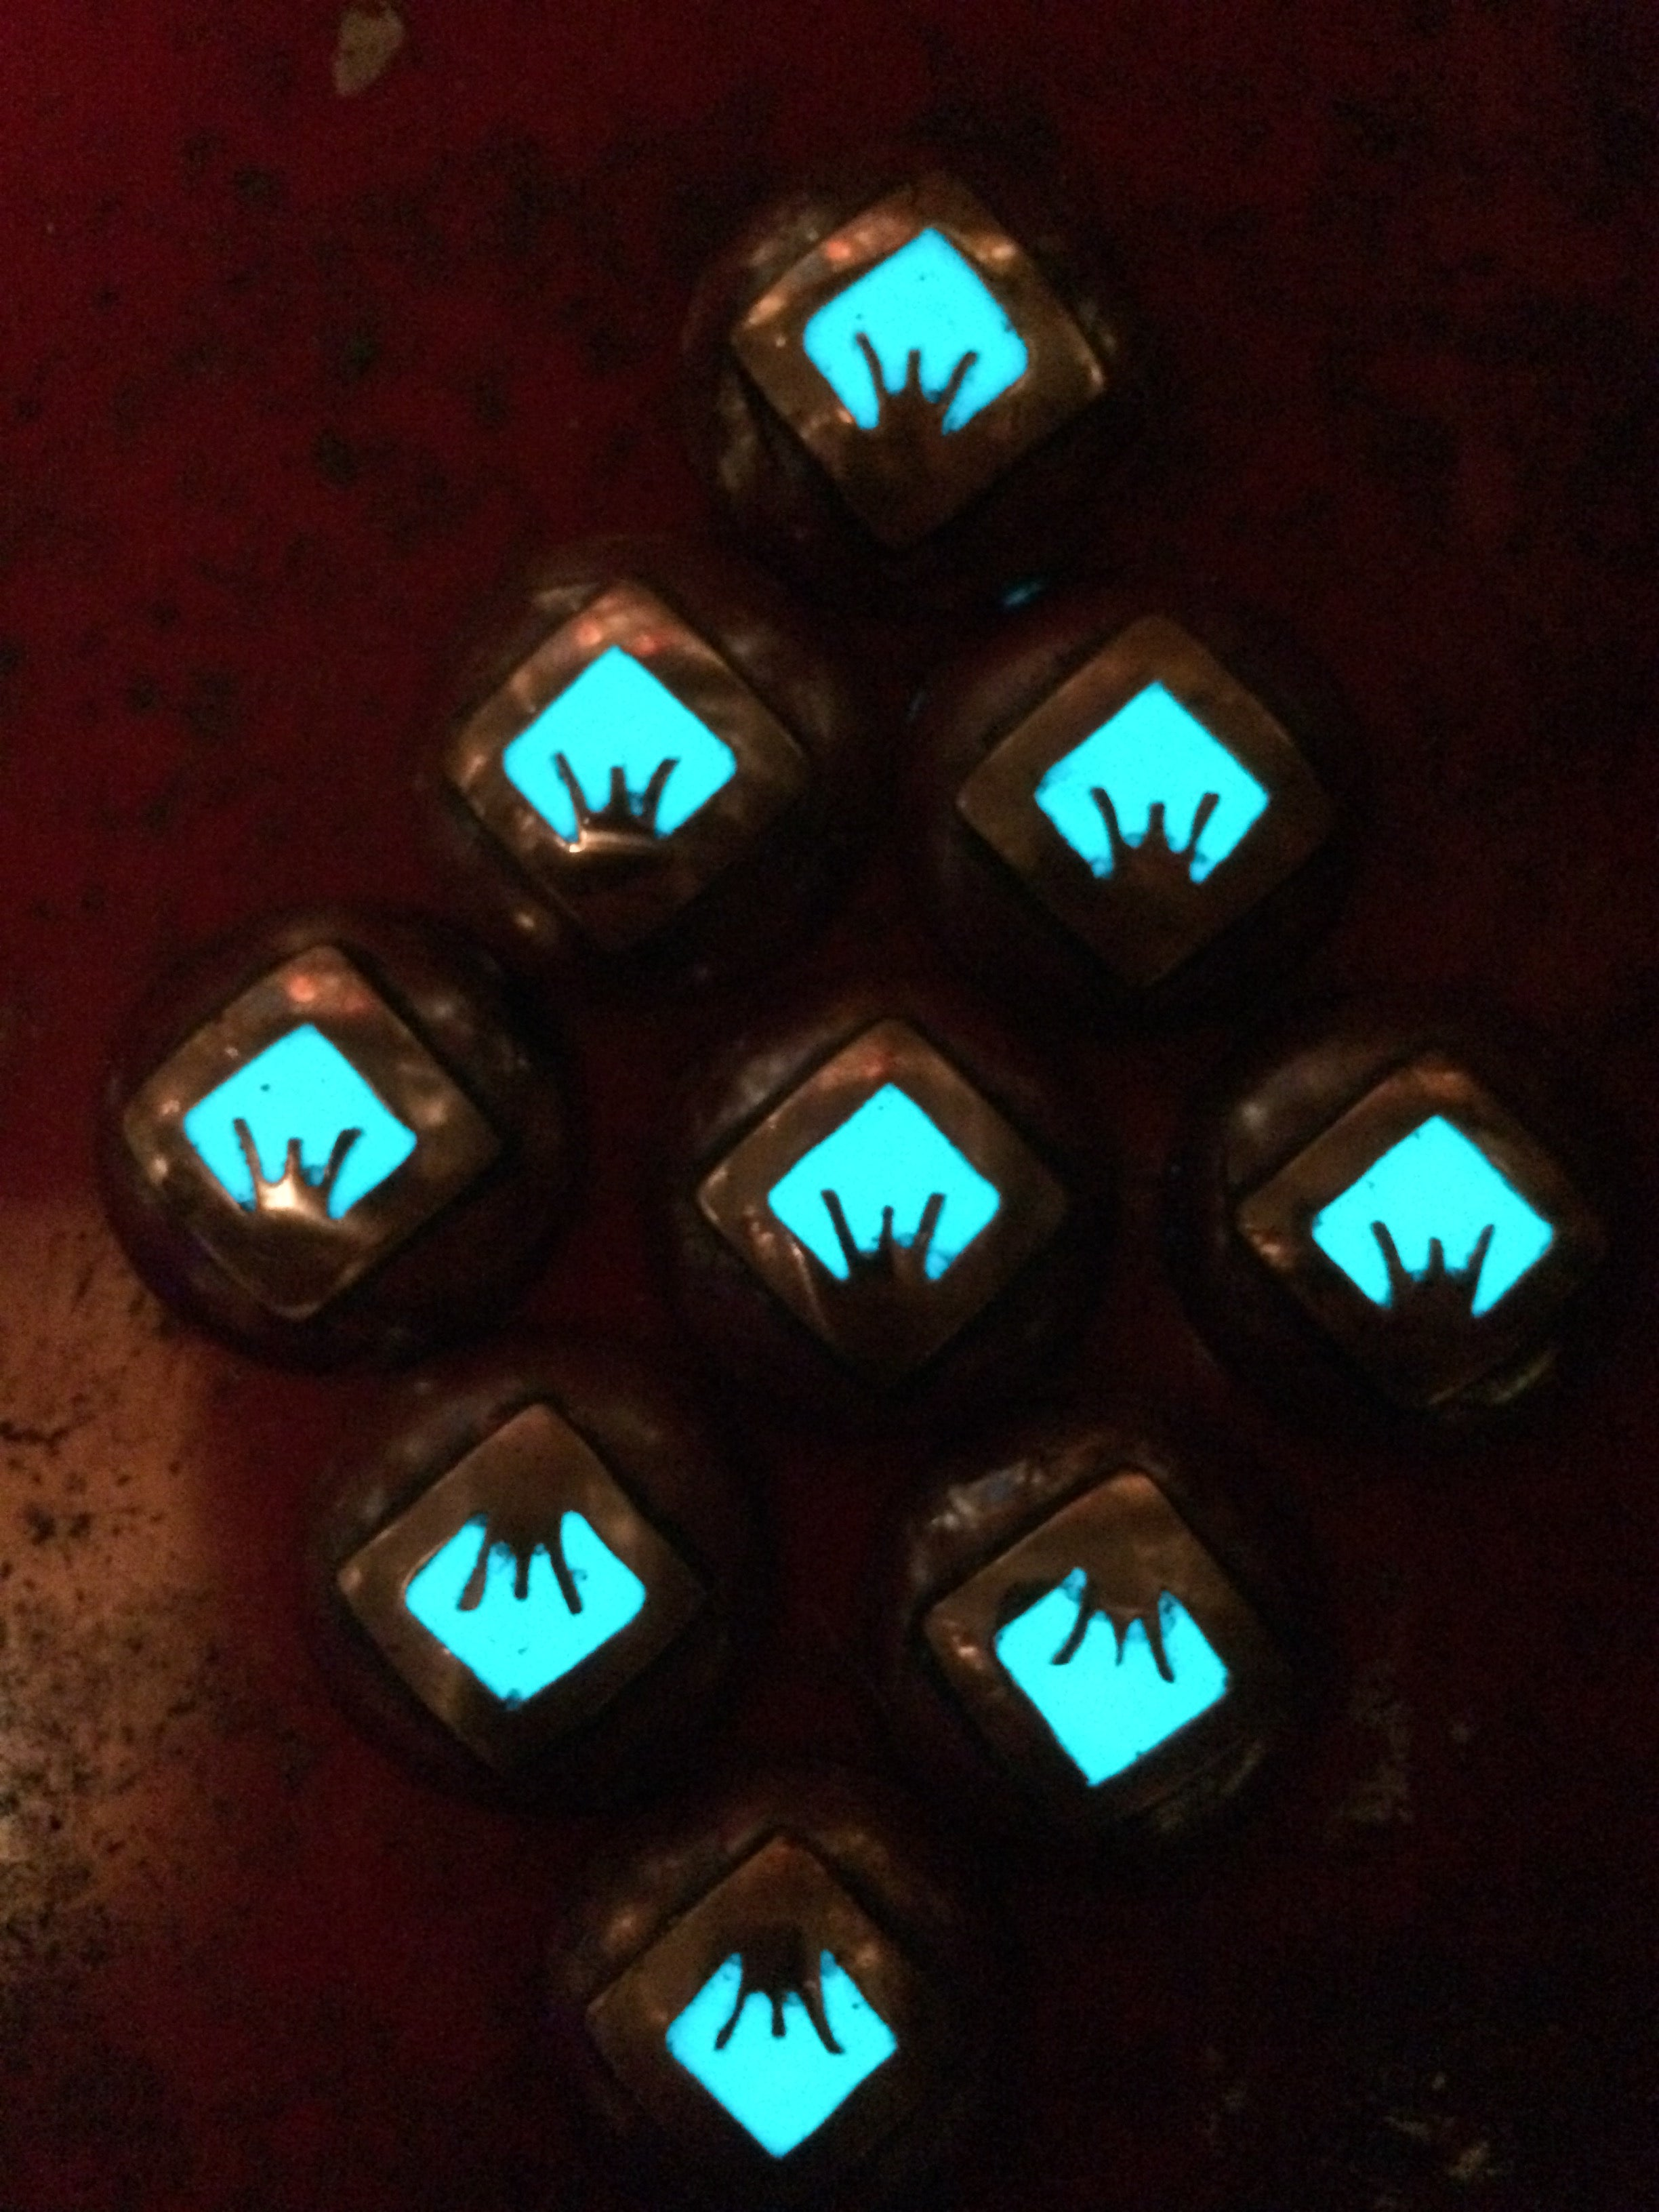 Iron sight ranger eye morale patches glowing in the dark